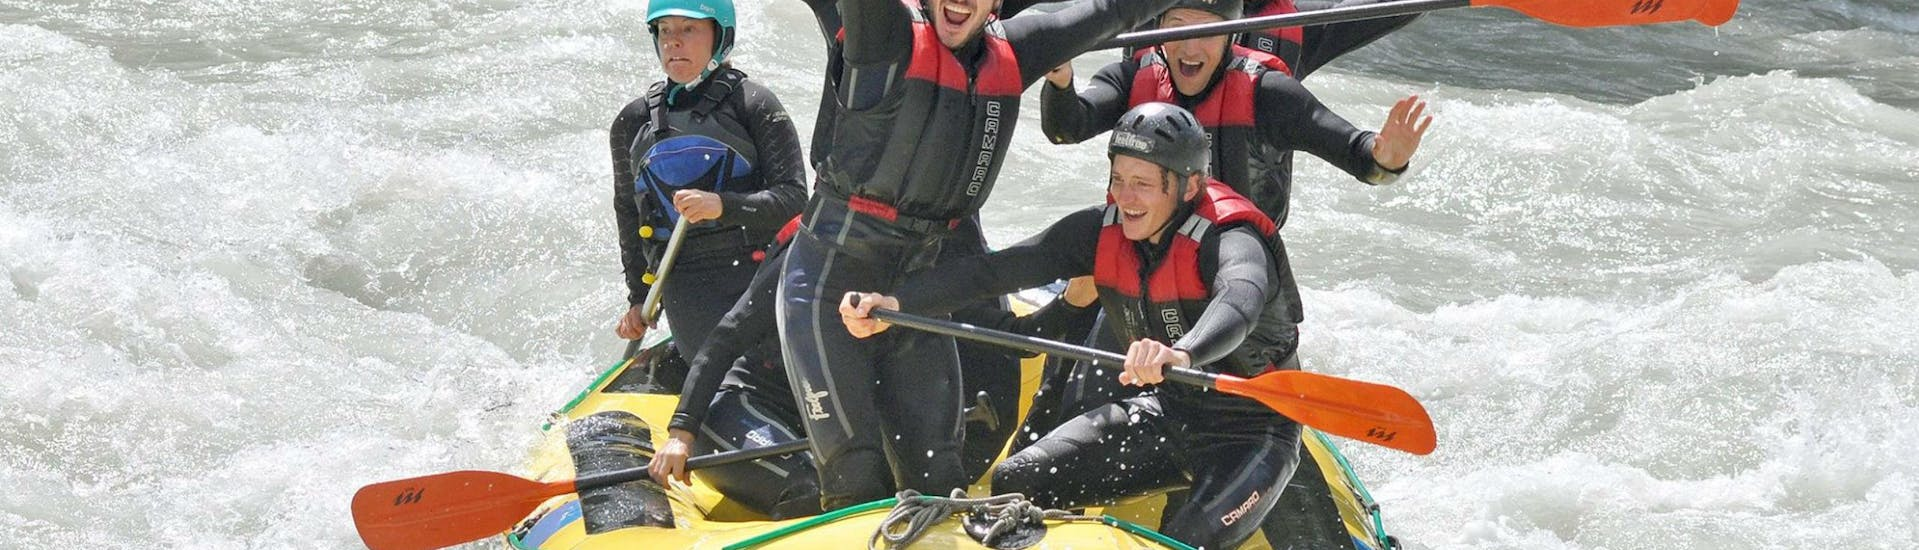 """Rafting in Ötztaler Ache - """"White Water Professional"""""""